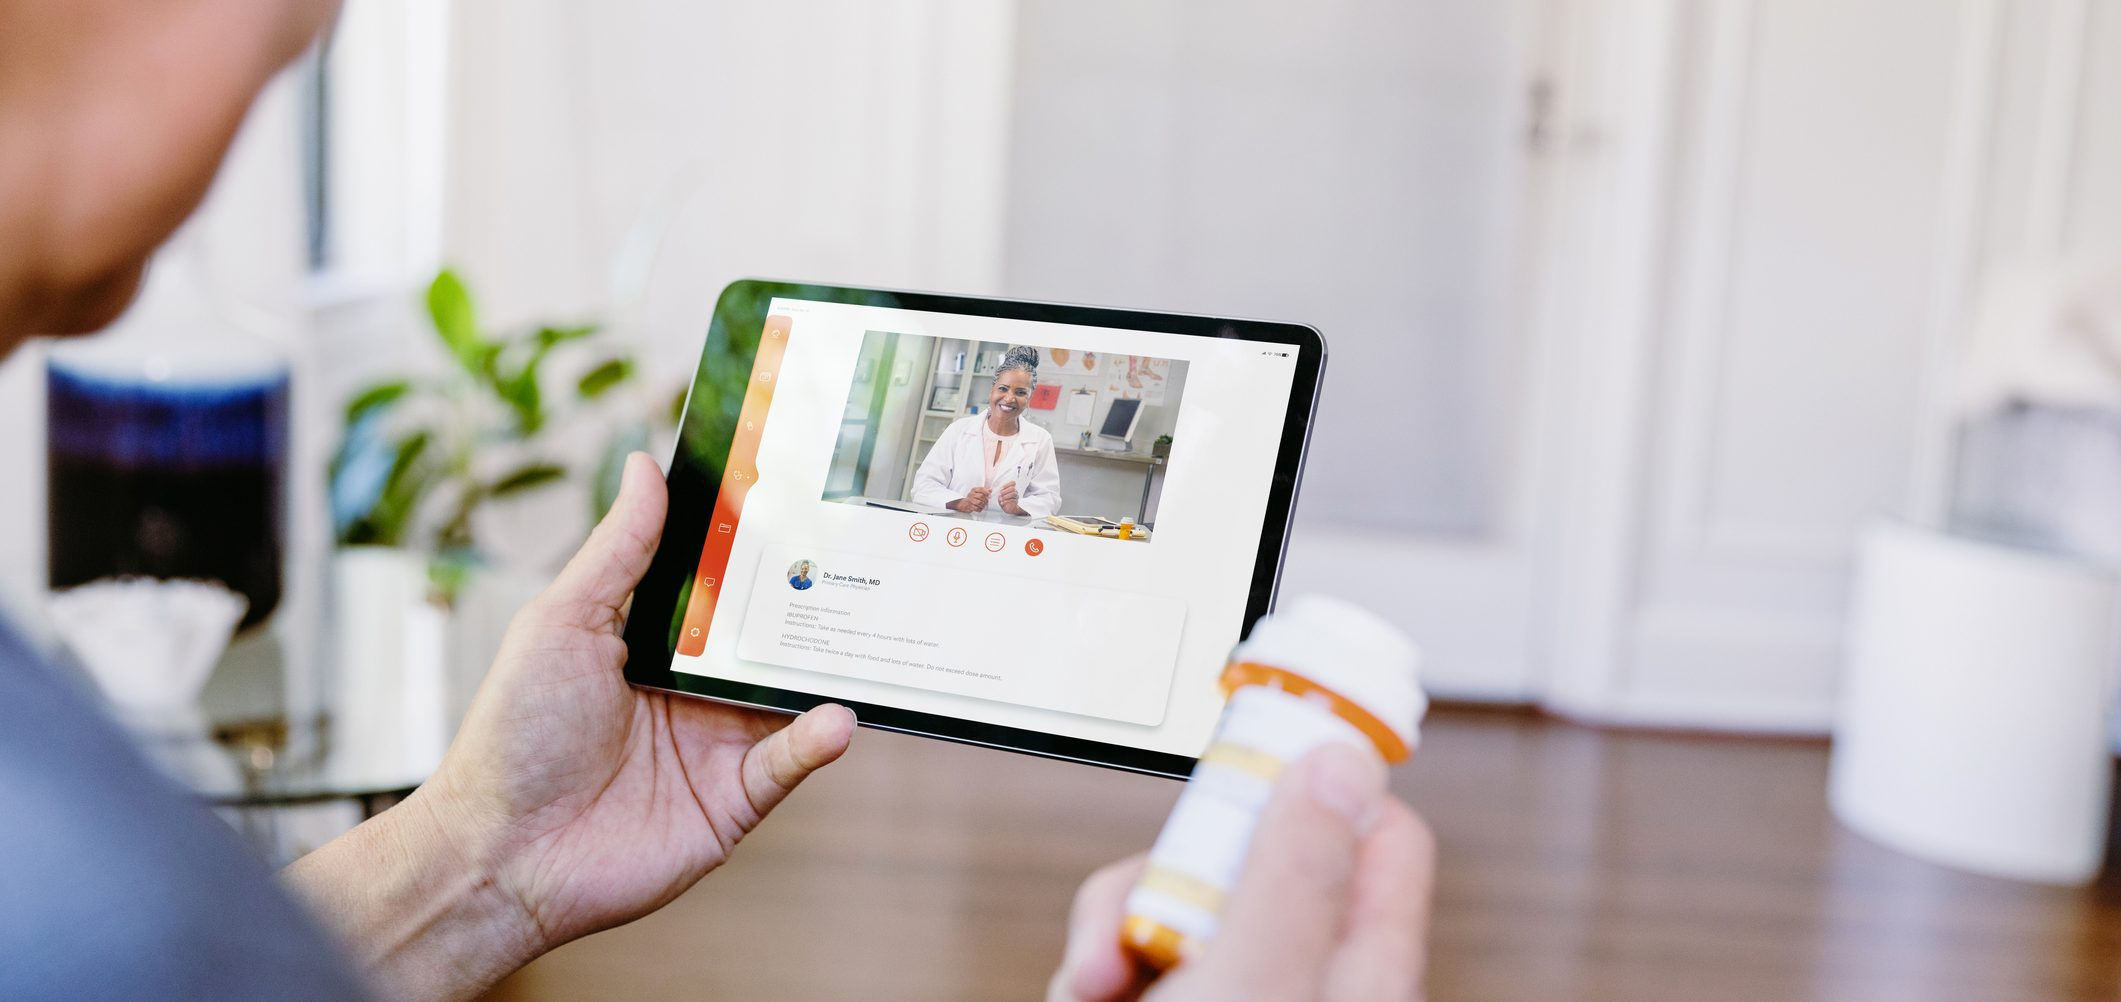 While holding a prescription medication container, an unrecognizable senior man video chats with a female doctor. The man is asking questions about his medication.